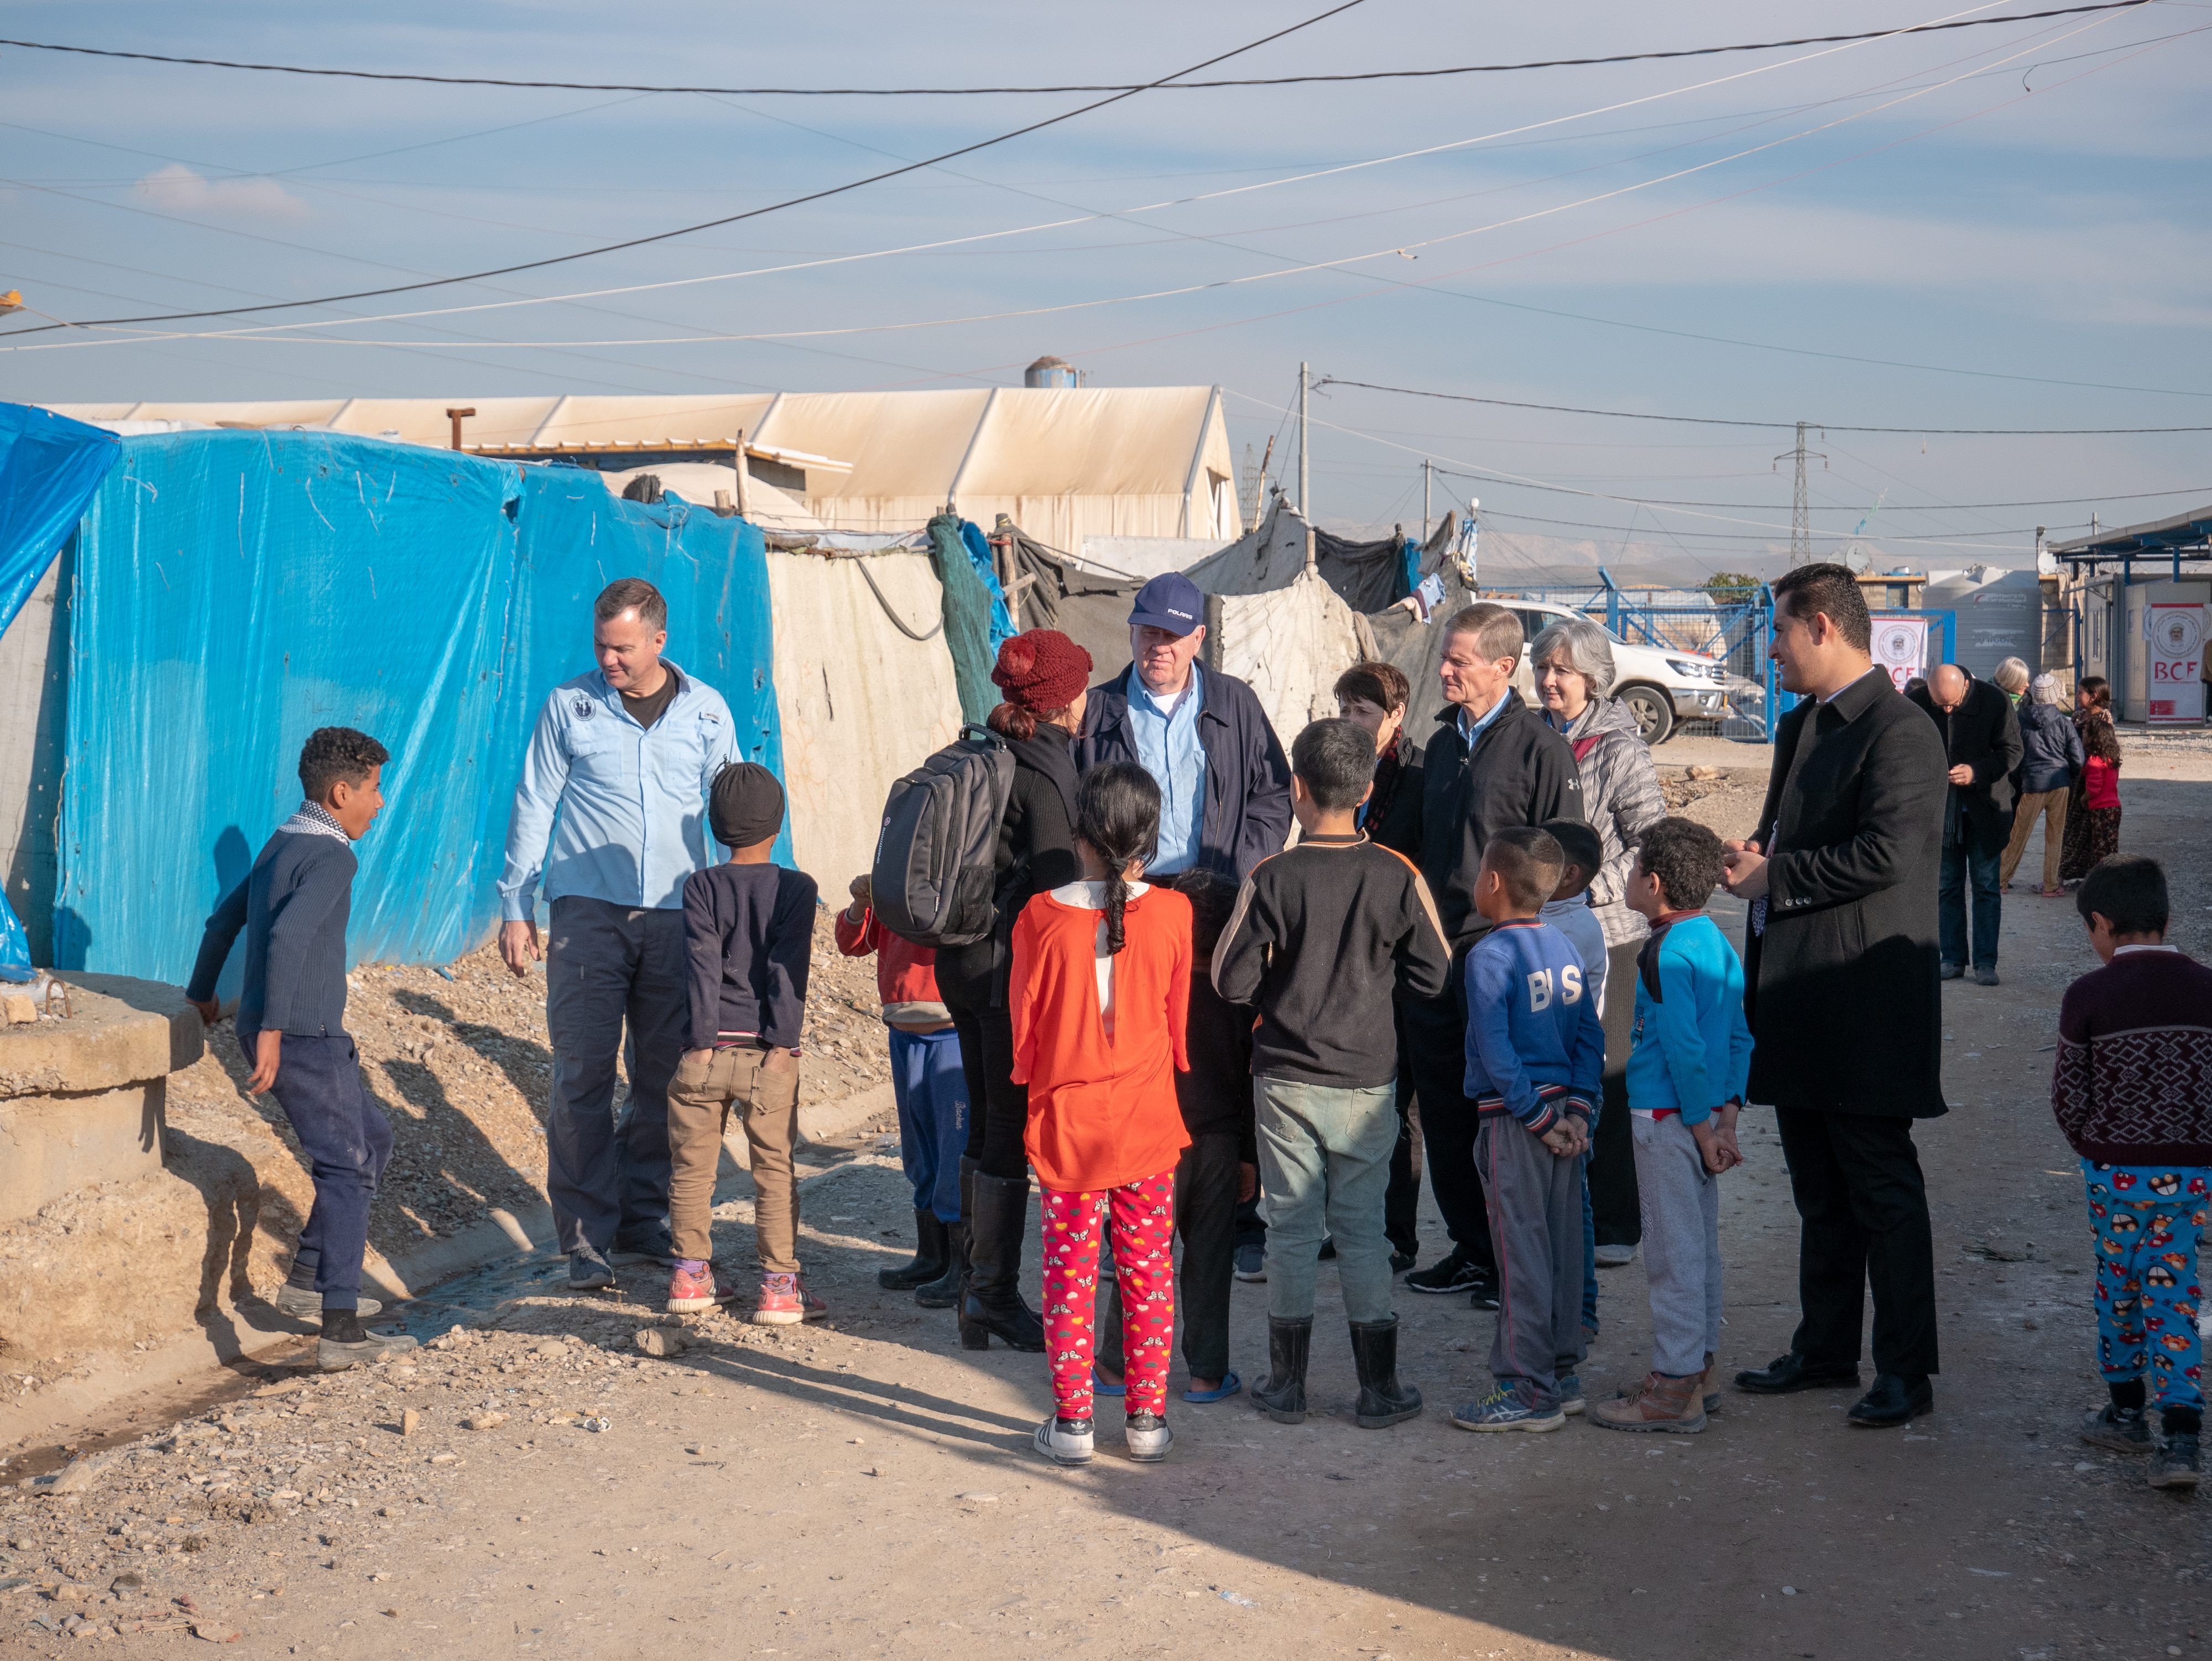 A group of visitors — including Elder David A. Bednar, Sister Susan Bednar, Elder Wllford W. Andersen and Sister Kathleen Andersen —are greeted by children at the Ashti refugee camp near Erbil, Kurdistan, on Jan. 21, 2019. LDS Charities assisted in 750 tents in two refugee camps in the area.